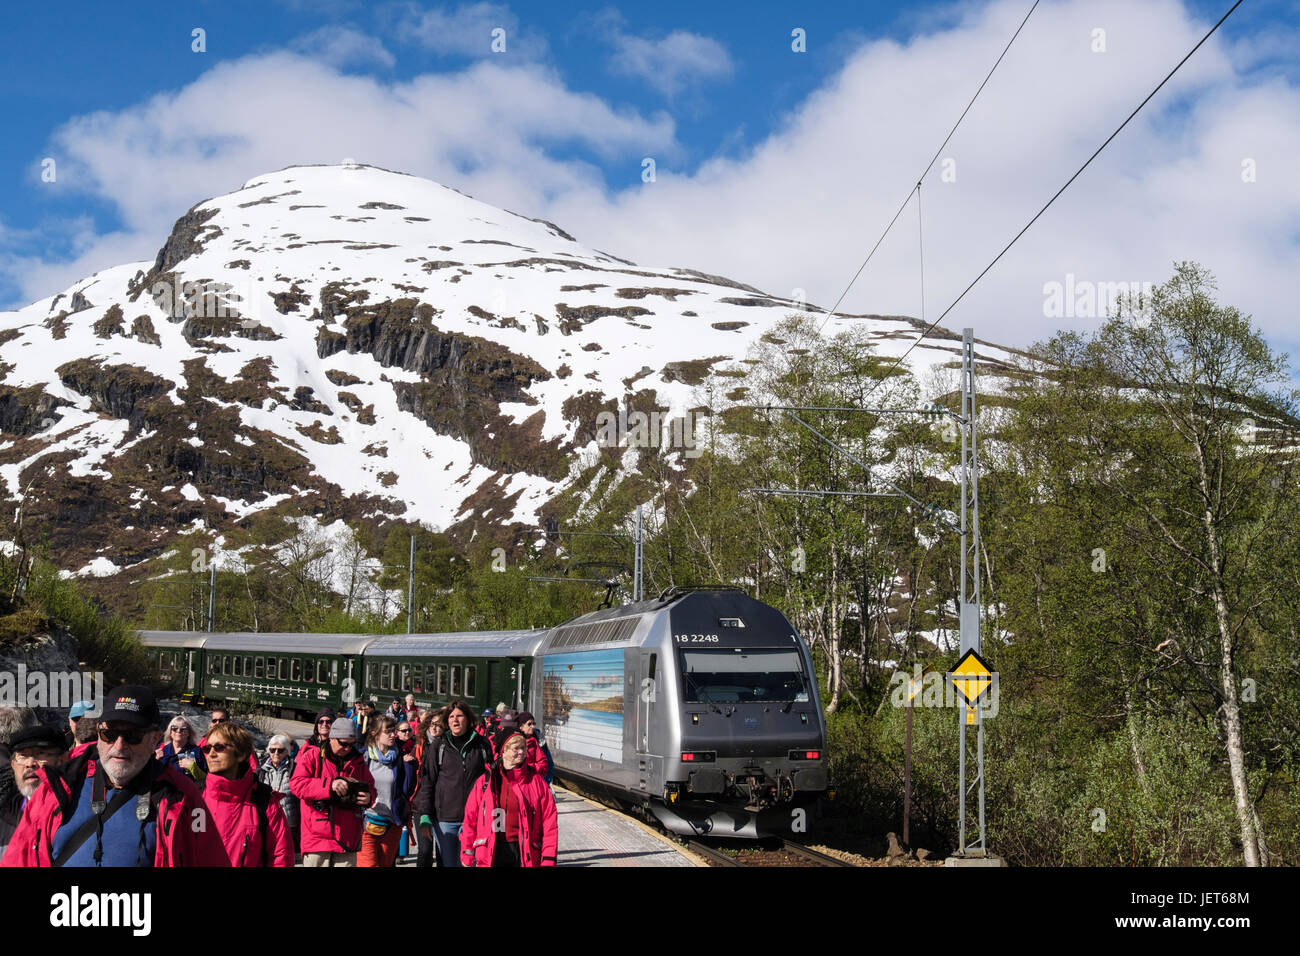 Flam Railway train in the station with G Adventures tourist group of passengers on platform. Vatnahelsen, Aurland, - Stock Image